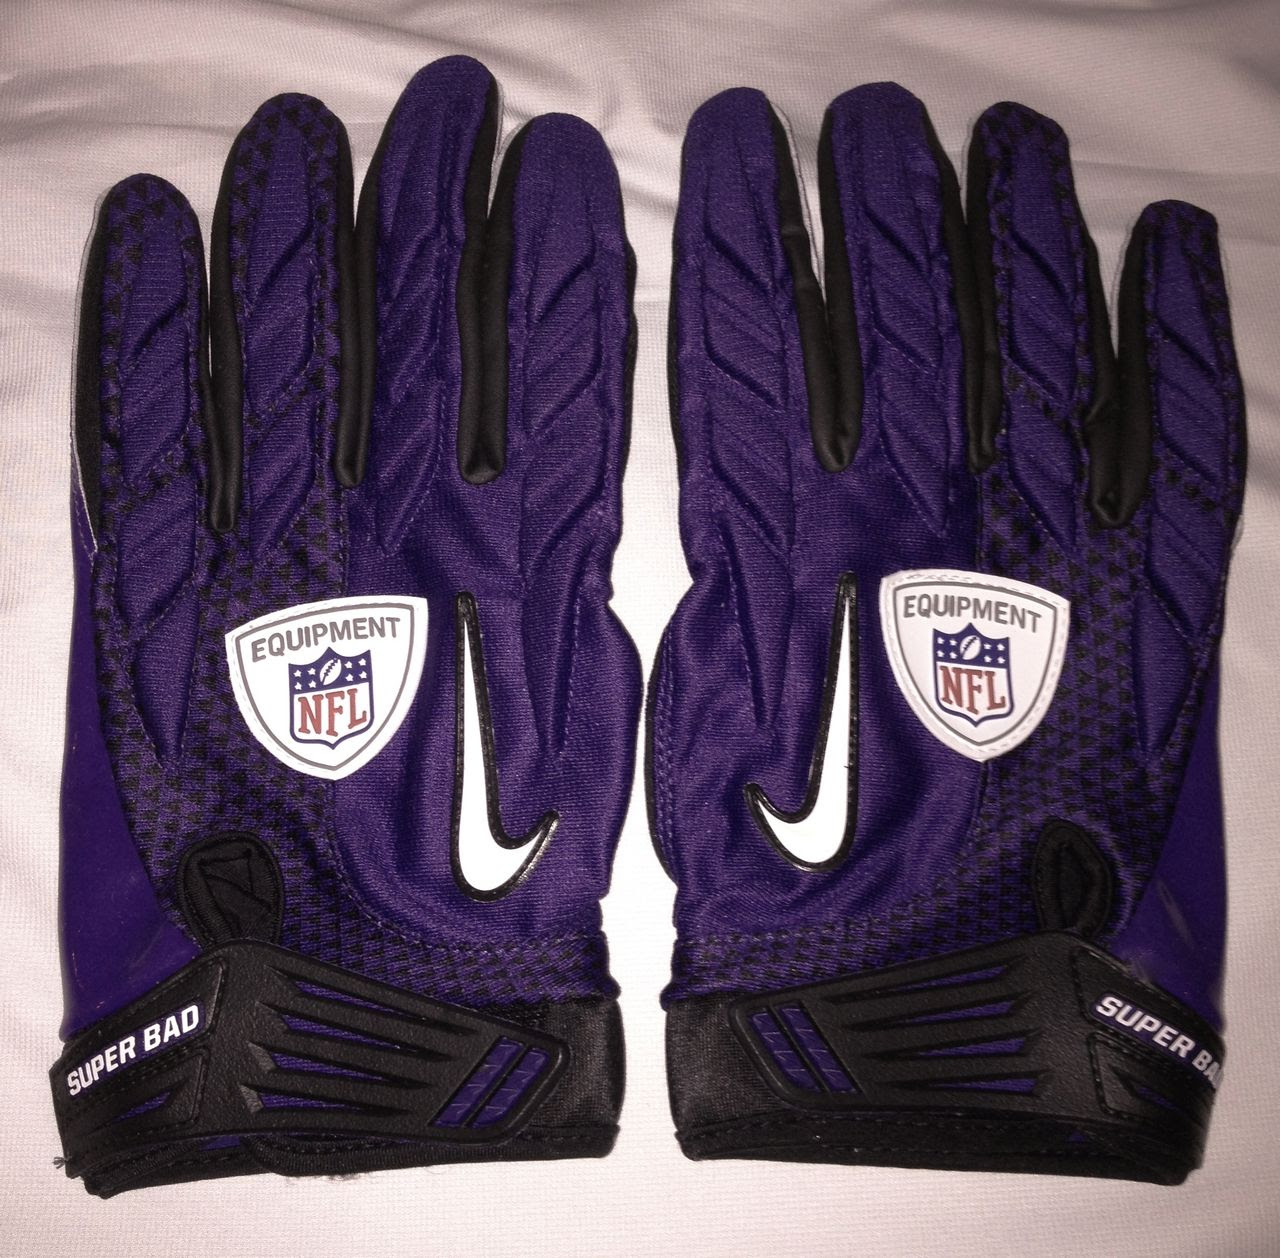 NEW Mens 3XL NIKE SUPERBAD SG NFL Equipment PURPLE Football Gloves Super Grip